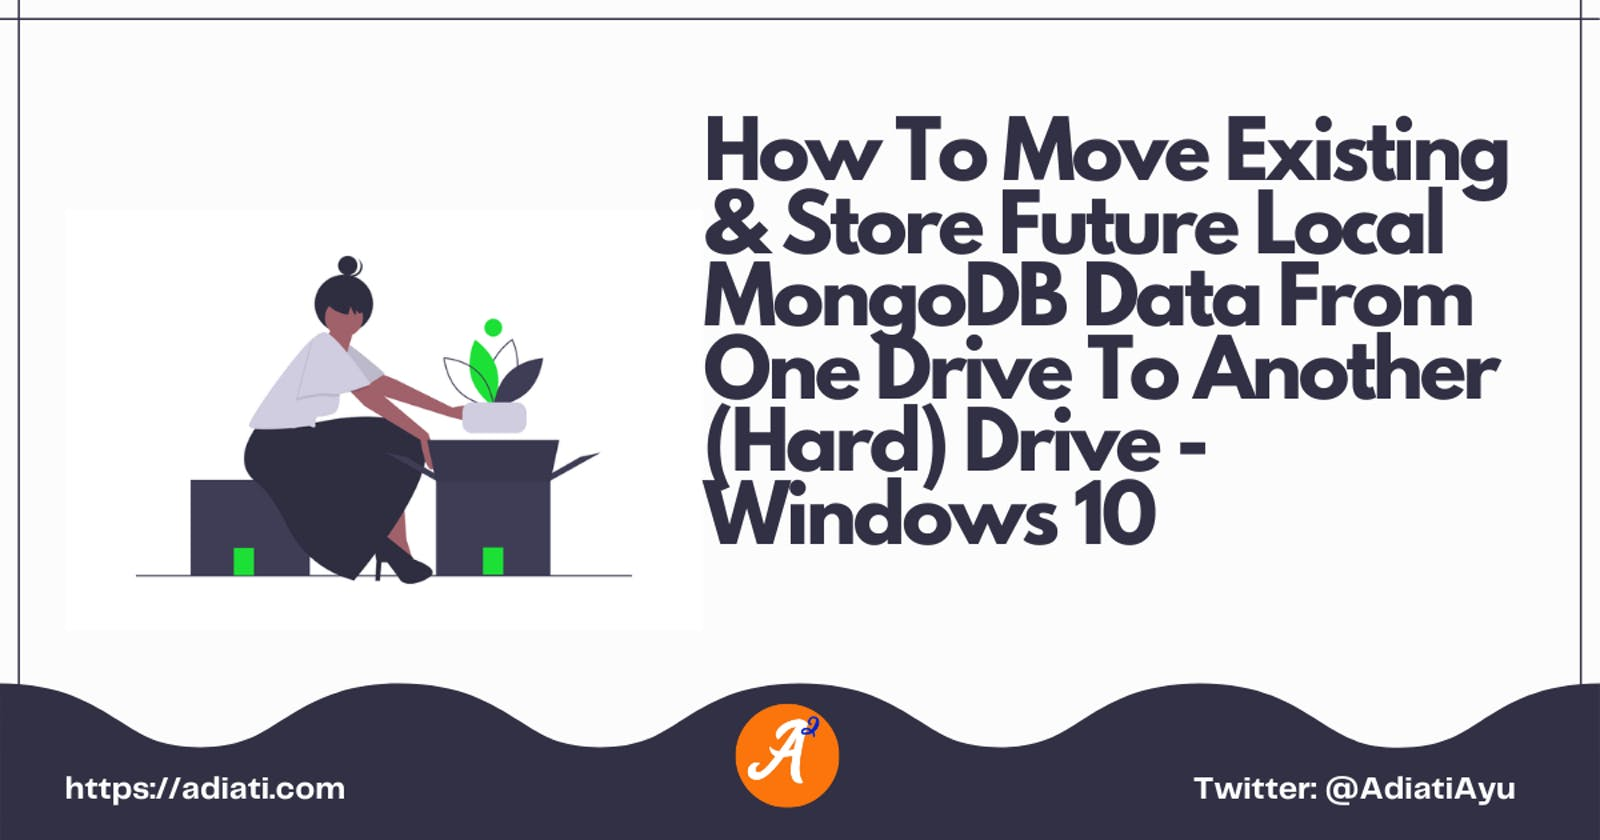 How To Move Existing & Store Future Local MongoDB Data From One Drive To Another (Hard) Drive - Windows 10